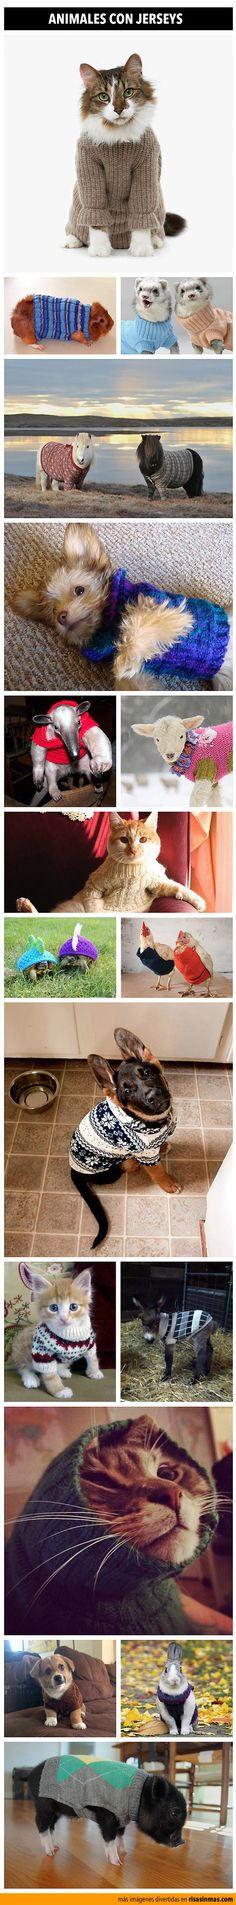 Animales con jerseys